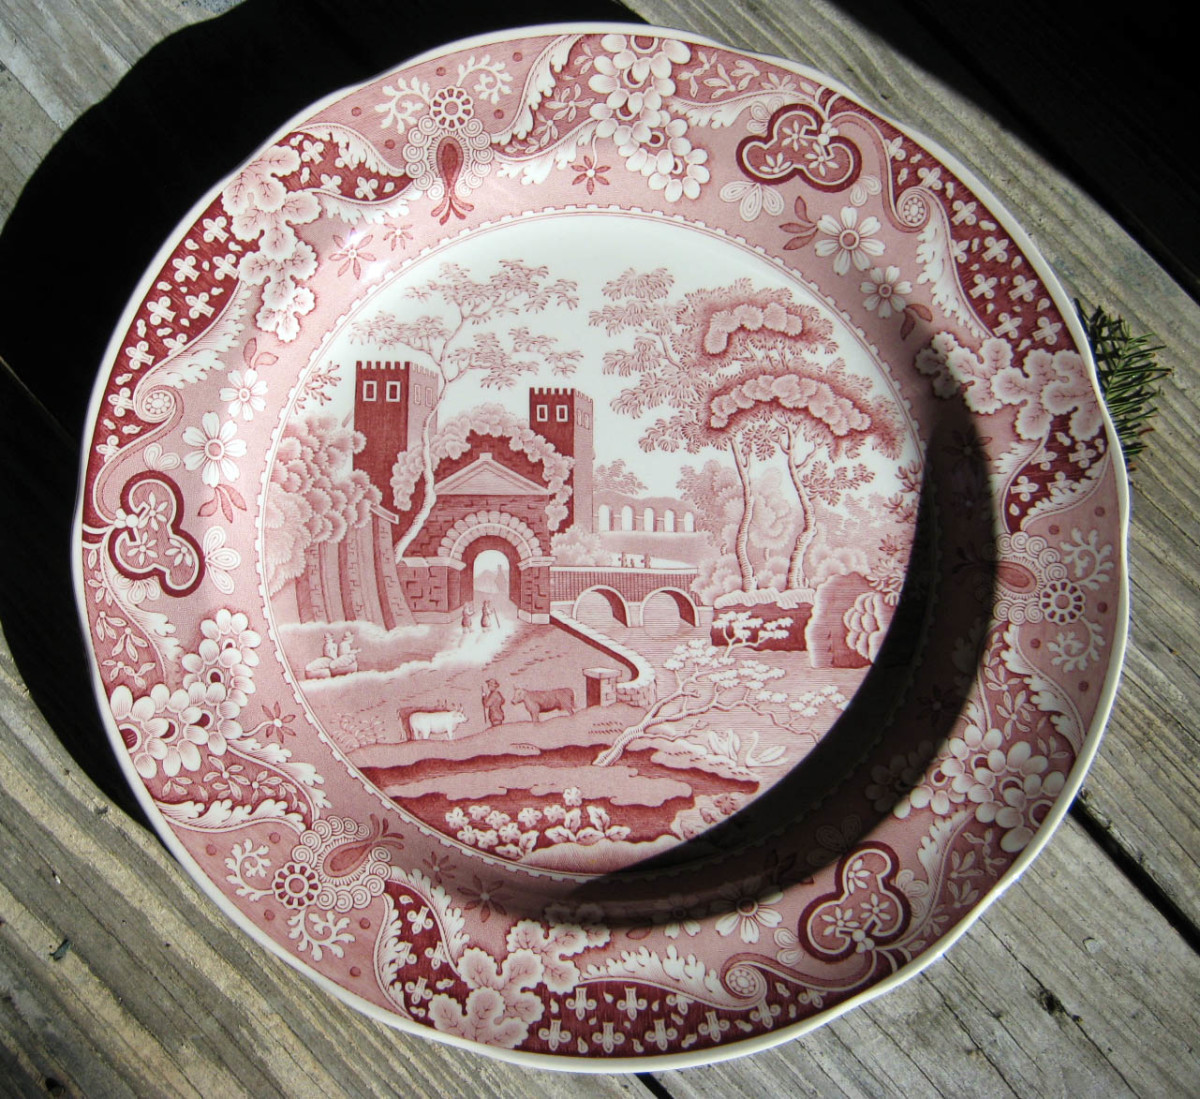 Spode Archive Collection.  This reissue of a traditional transferware pattern features a British castle in a lovely shade of cranberry.